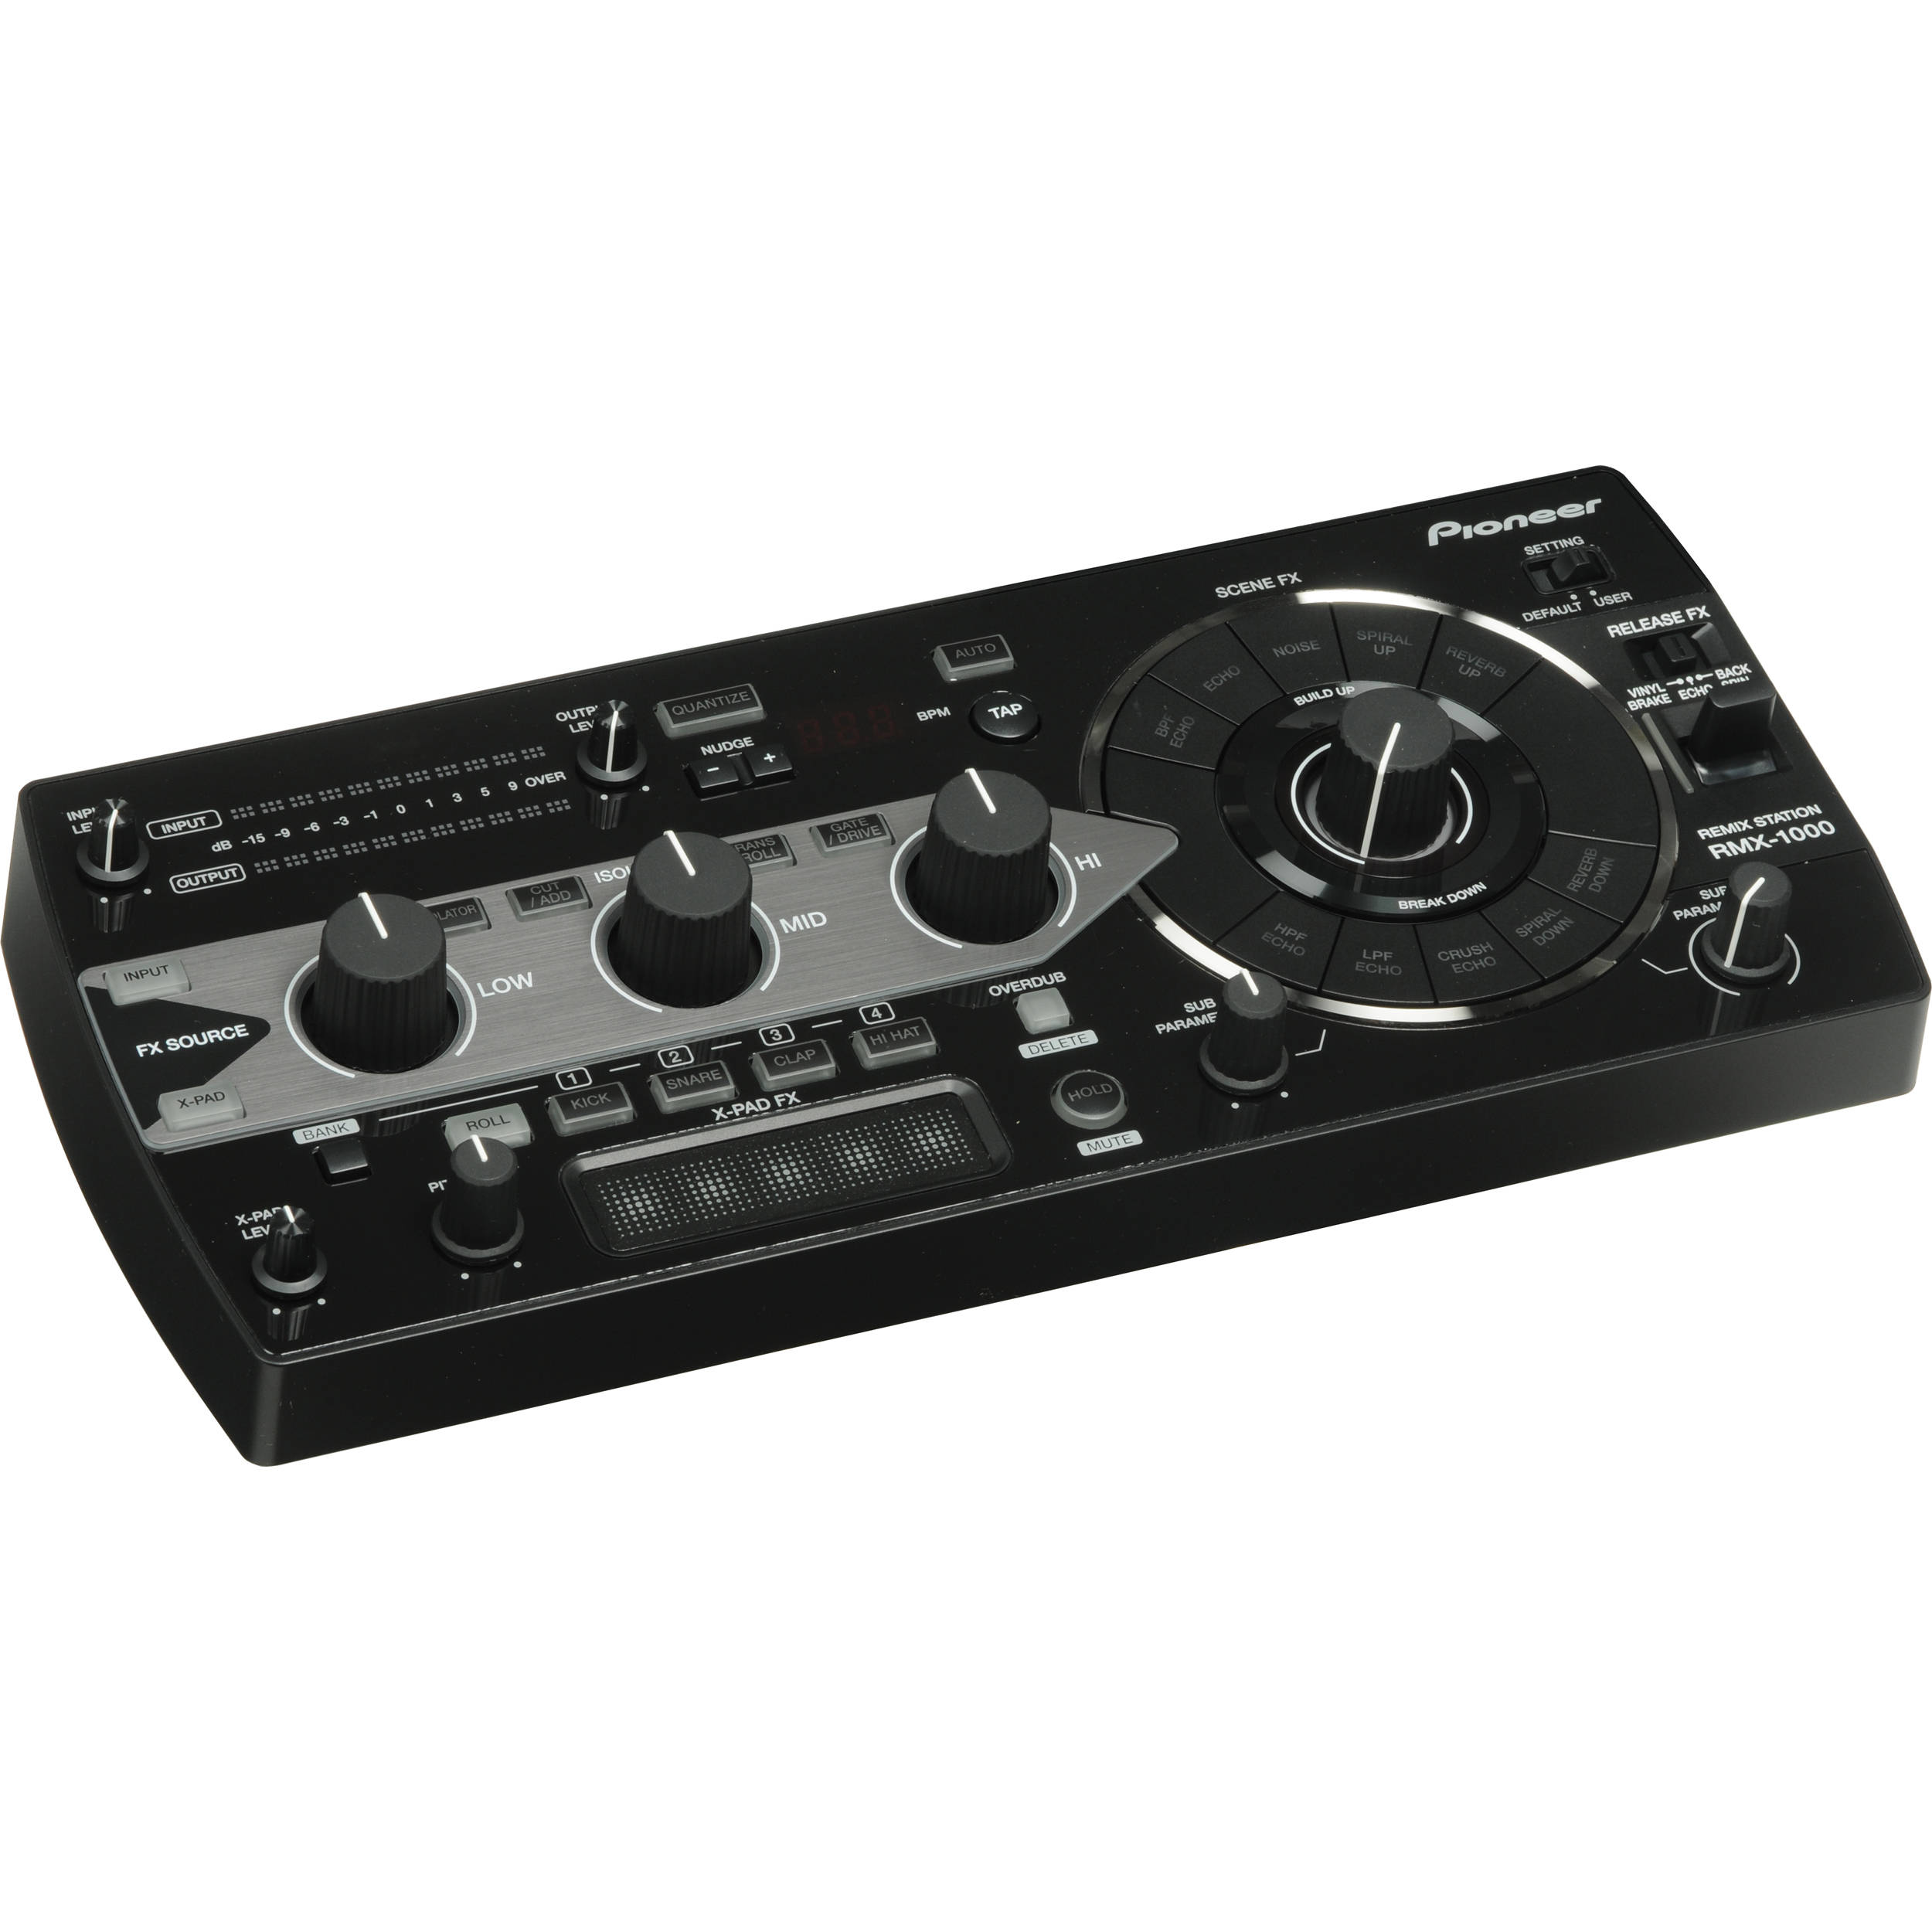 Pioneer RMX-1000 DJ Controller Drivers for Windows 7